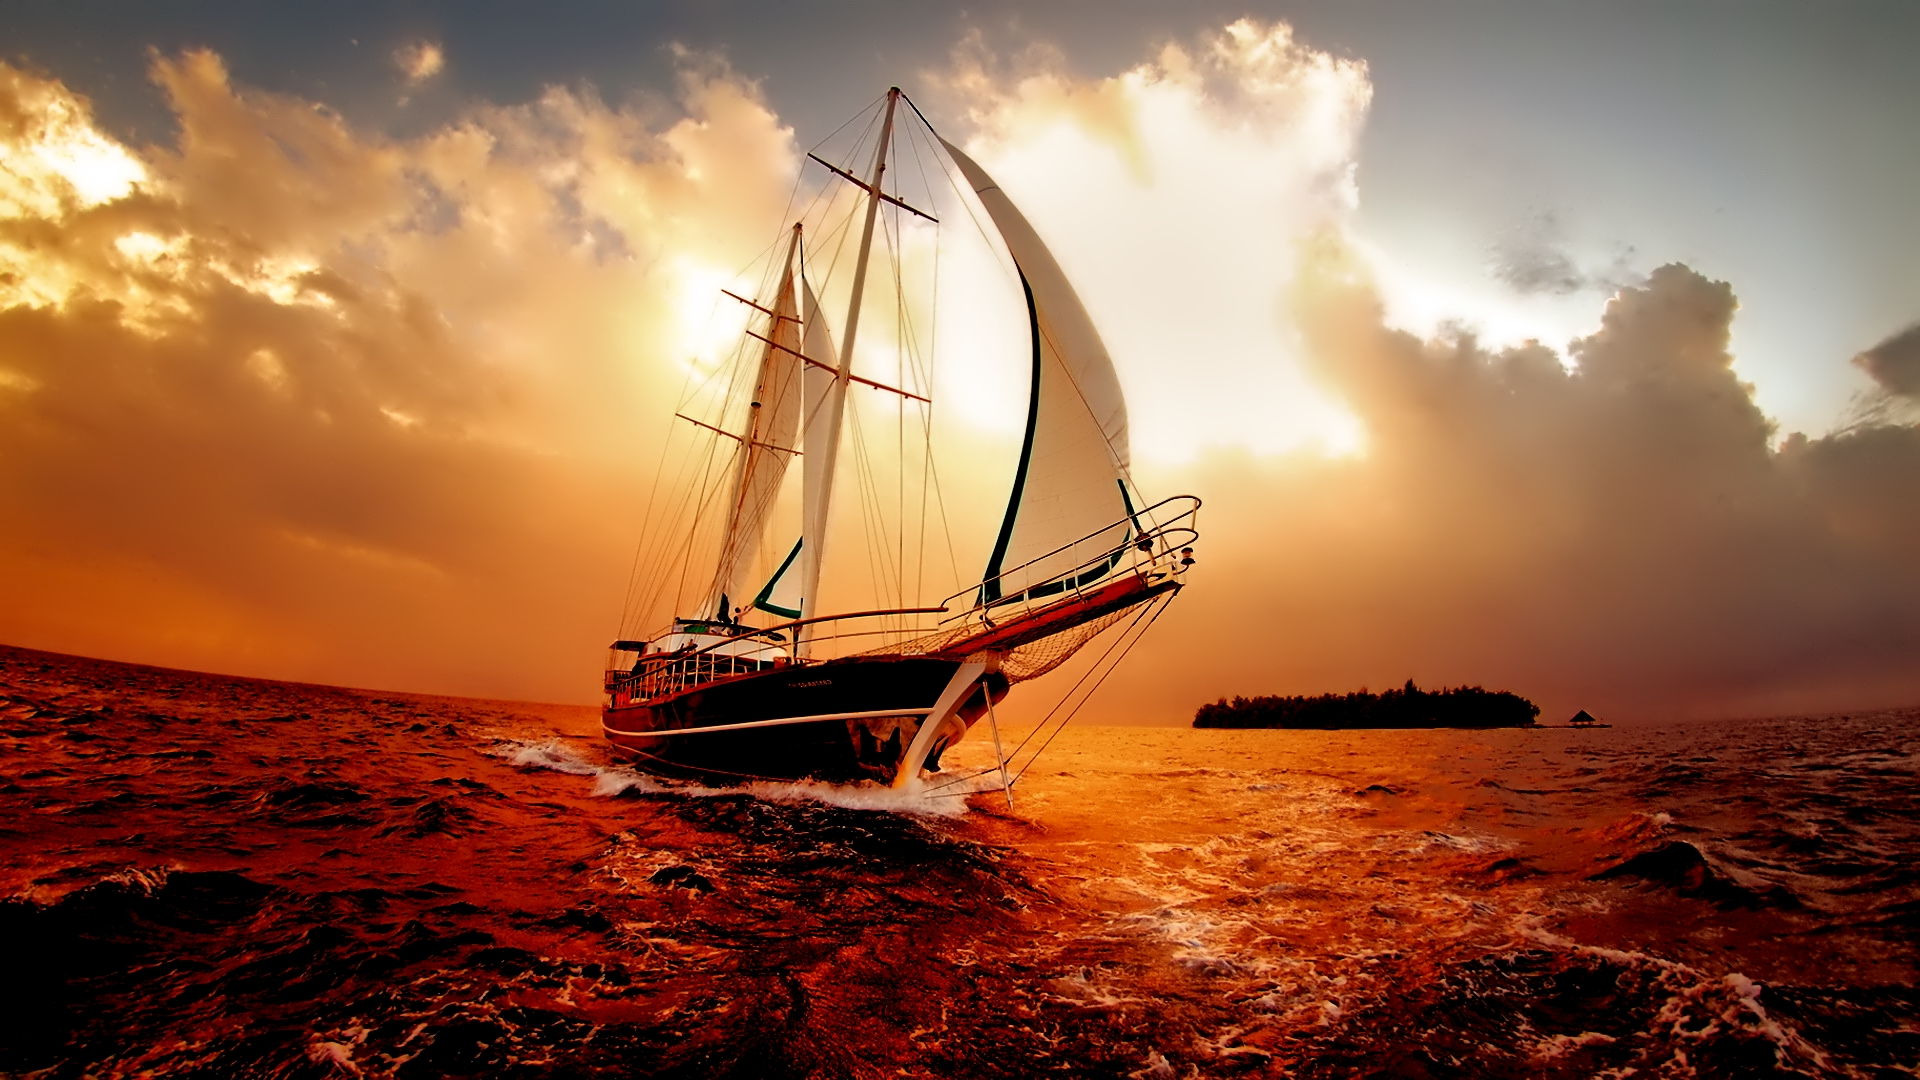 amazing boat wallpaper 1920x1080 28887